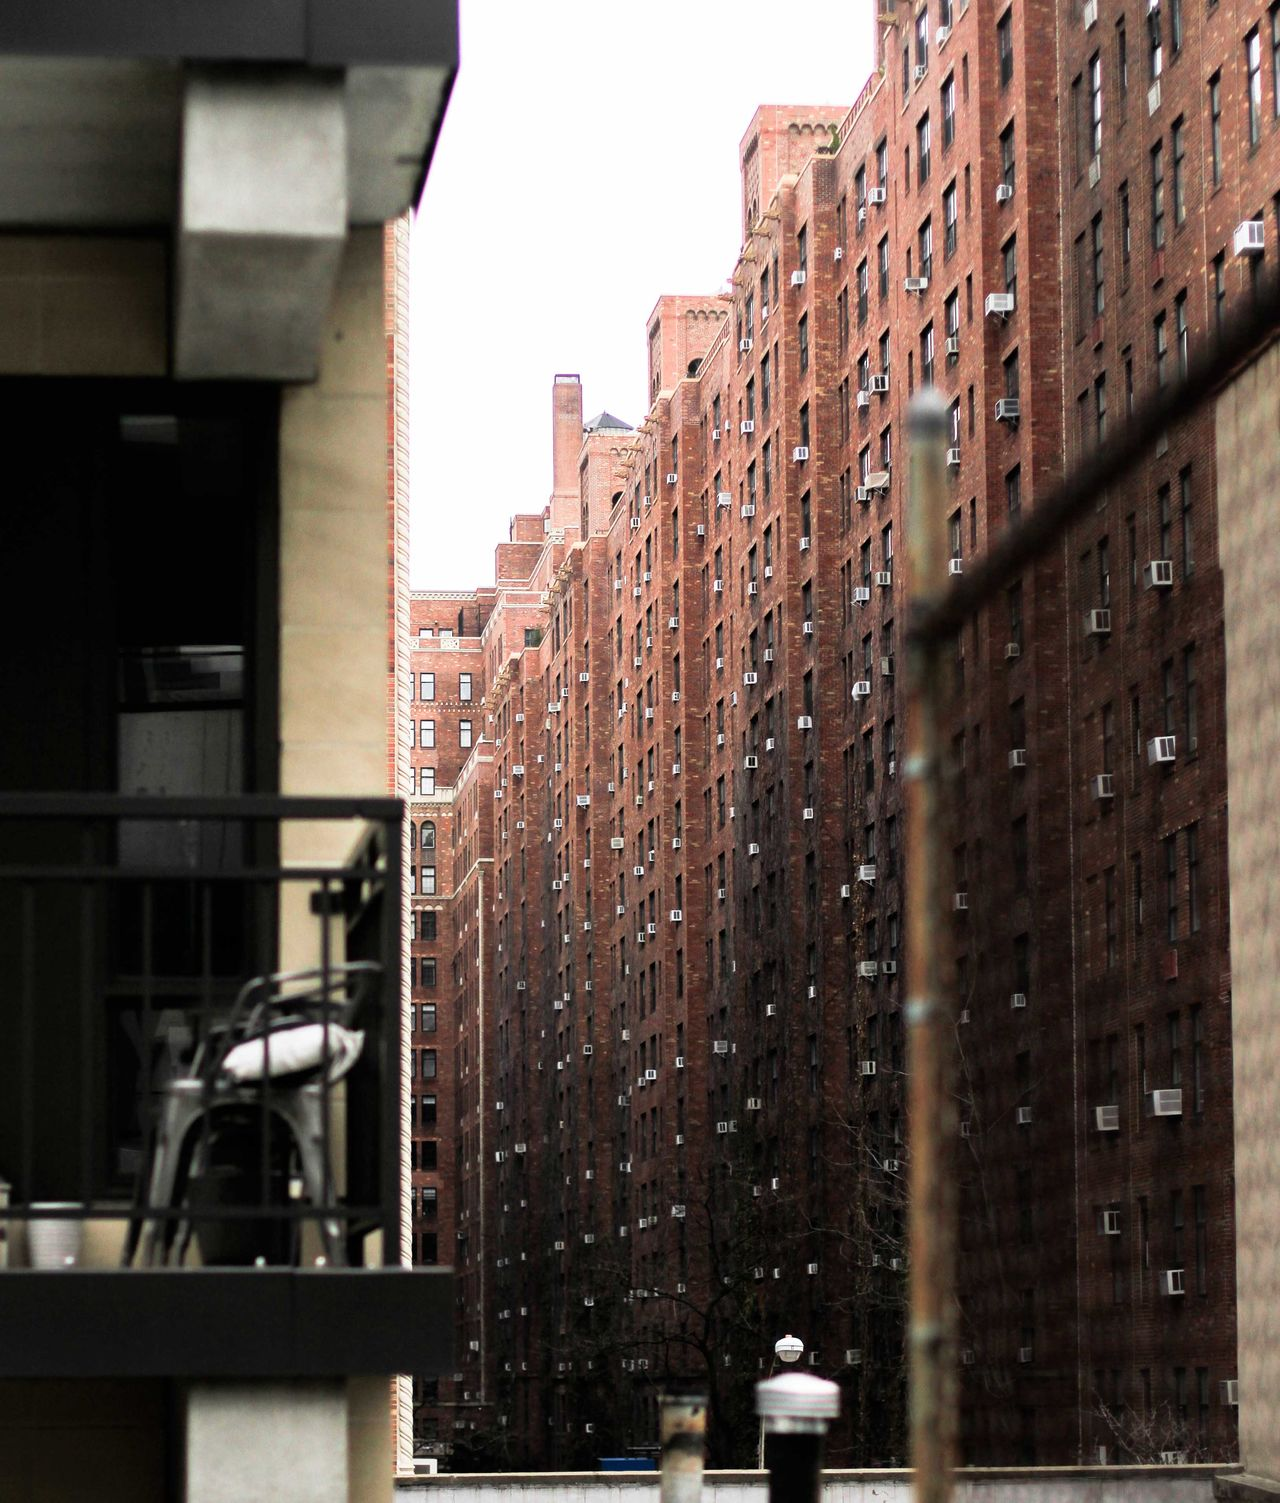 Architecture Building Exterior Built Structure City Day High Line Park No People Outdoors Pattern Sky Symmetry